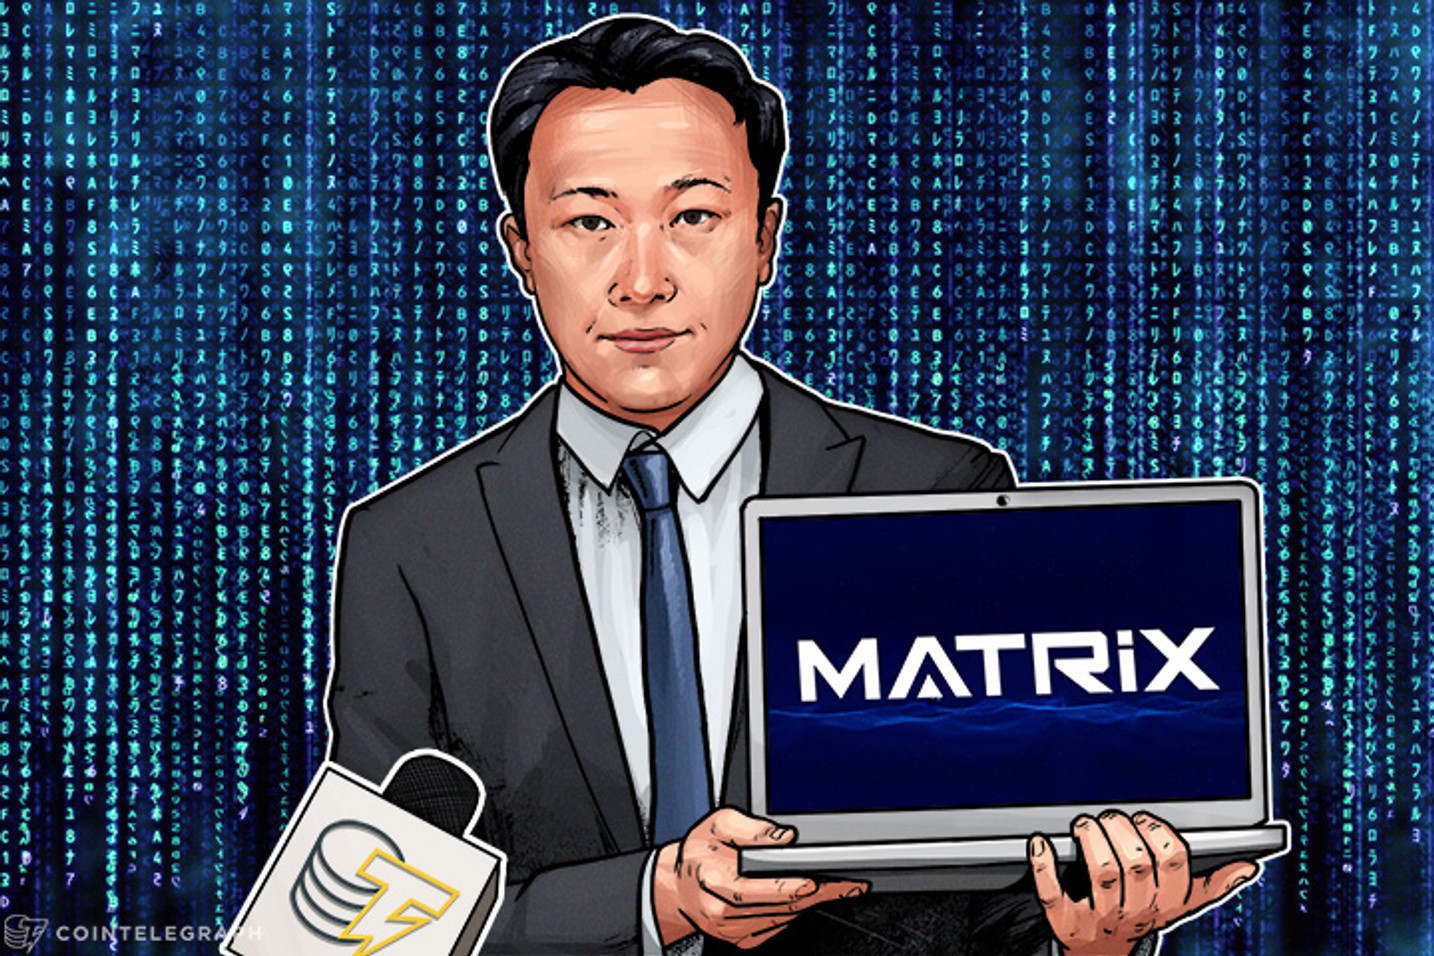 Blockchain and Smart Contracts For Everyone: Interview With CEO of Matrix